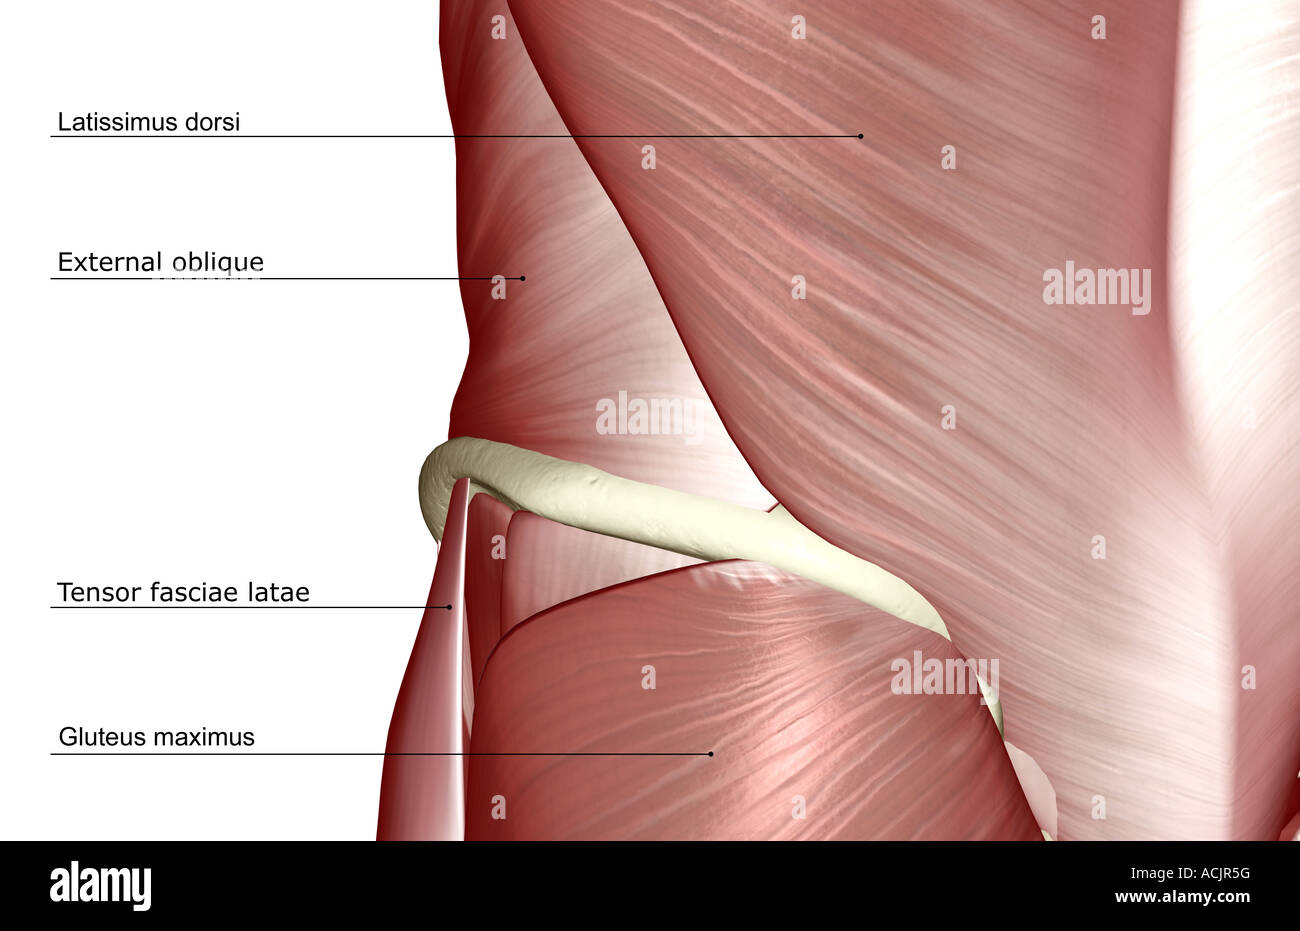 Muscles Of The Lower Back Stock Photos Muscles Of The Lower Back